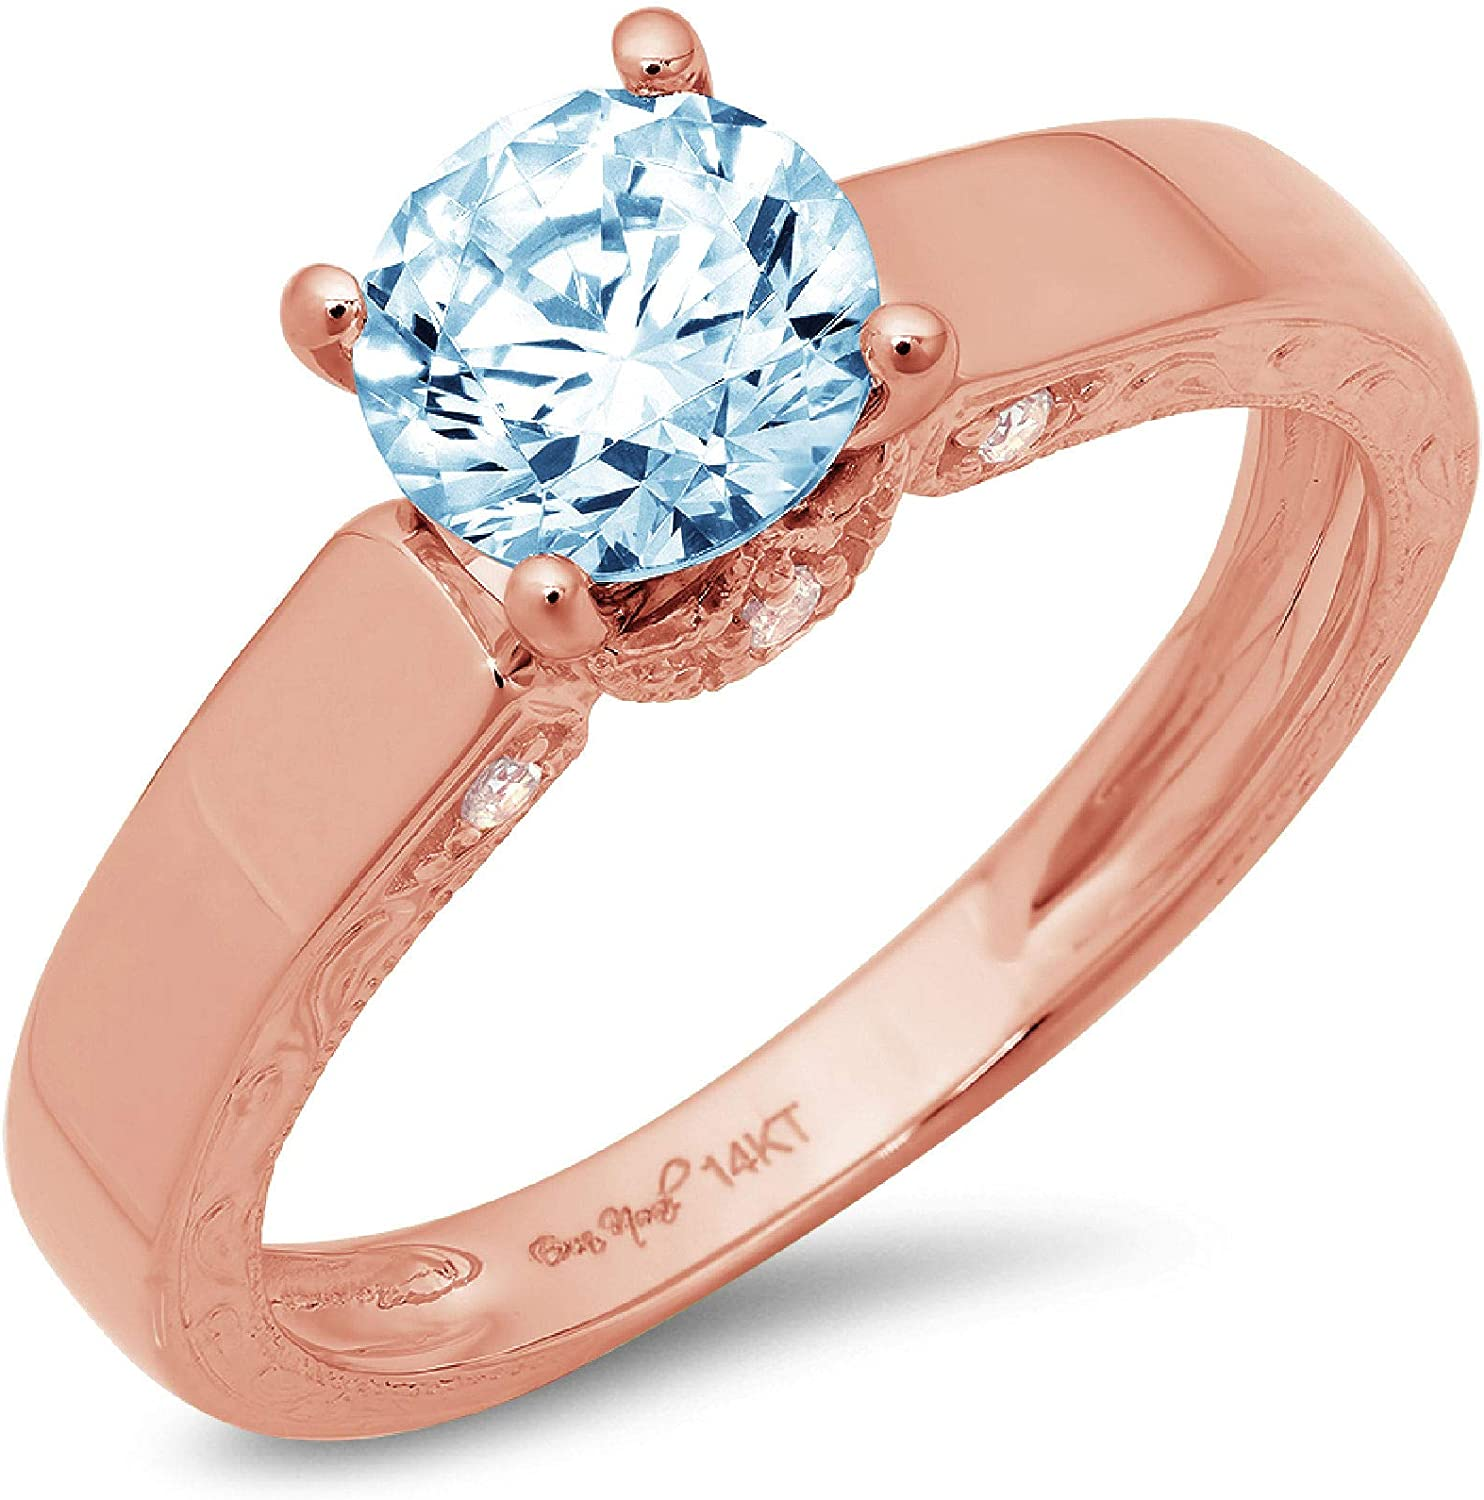 Luxury goods New York Mall 1.70ct Brilliant Round Cut Solitaire Genuine Flawless Blue Simul